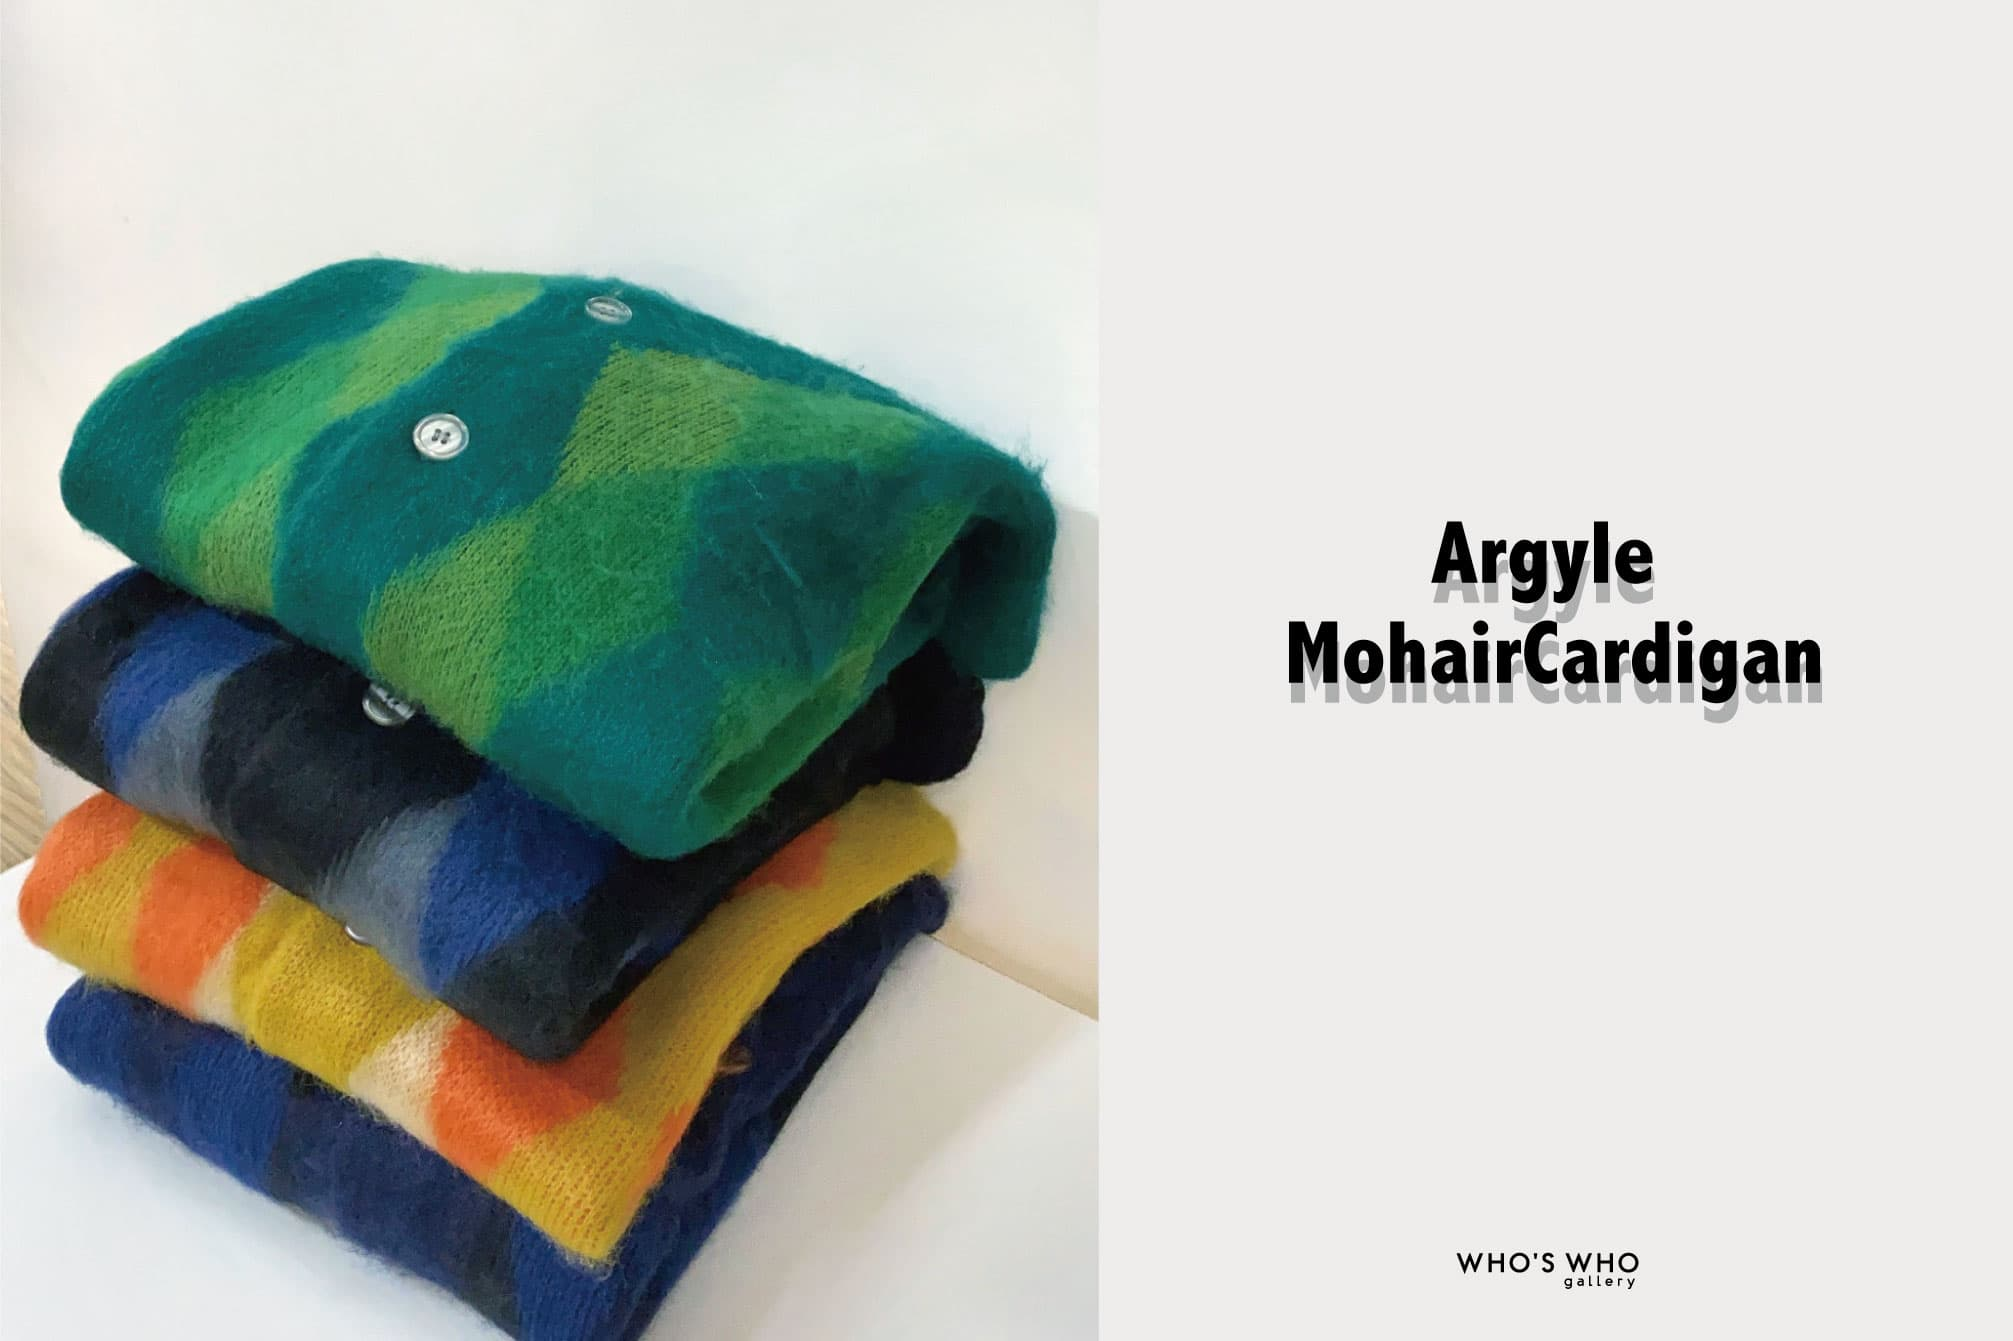 WHO'S WHO gallery 【Argyle Mohair Cardigan】